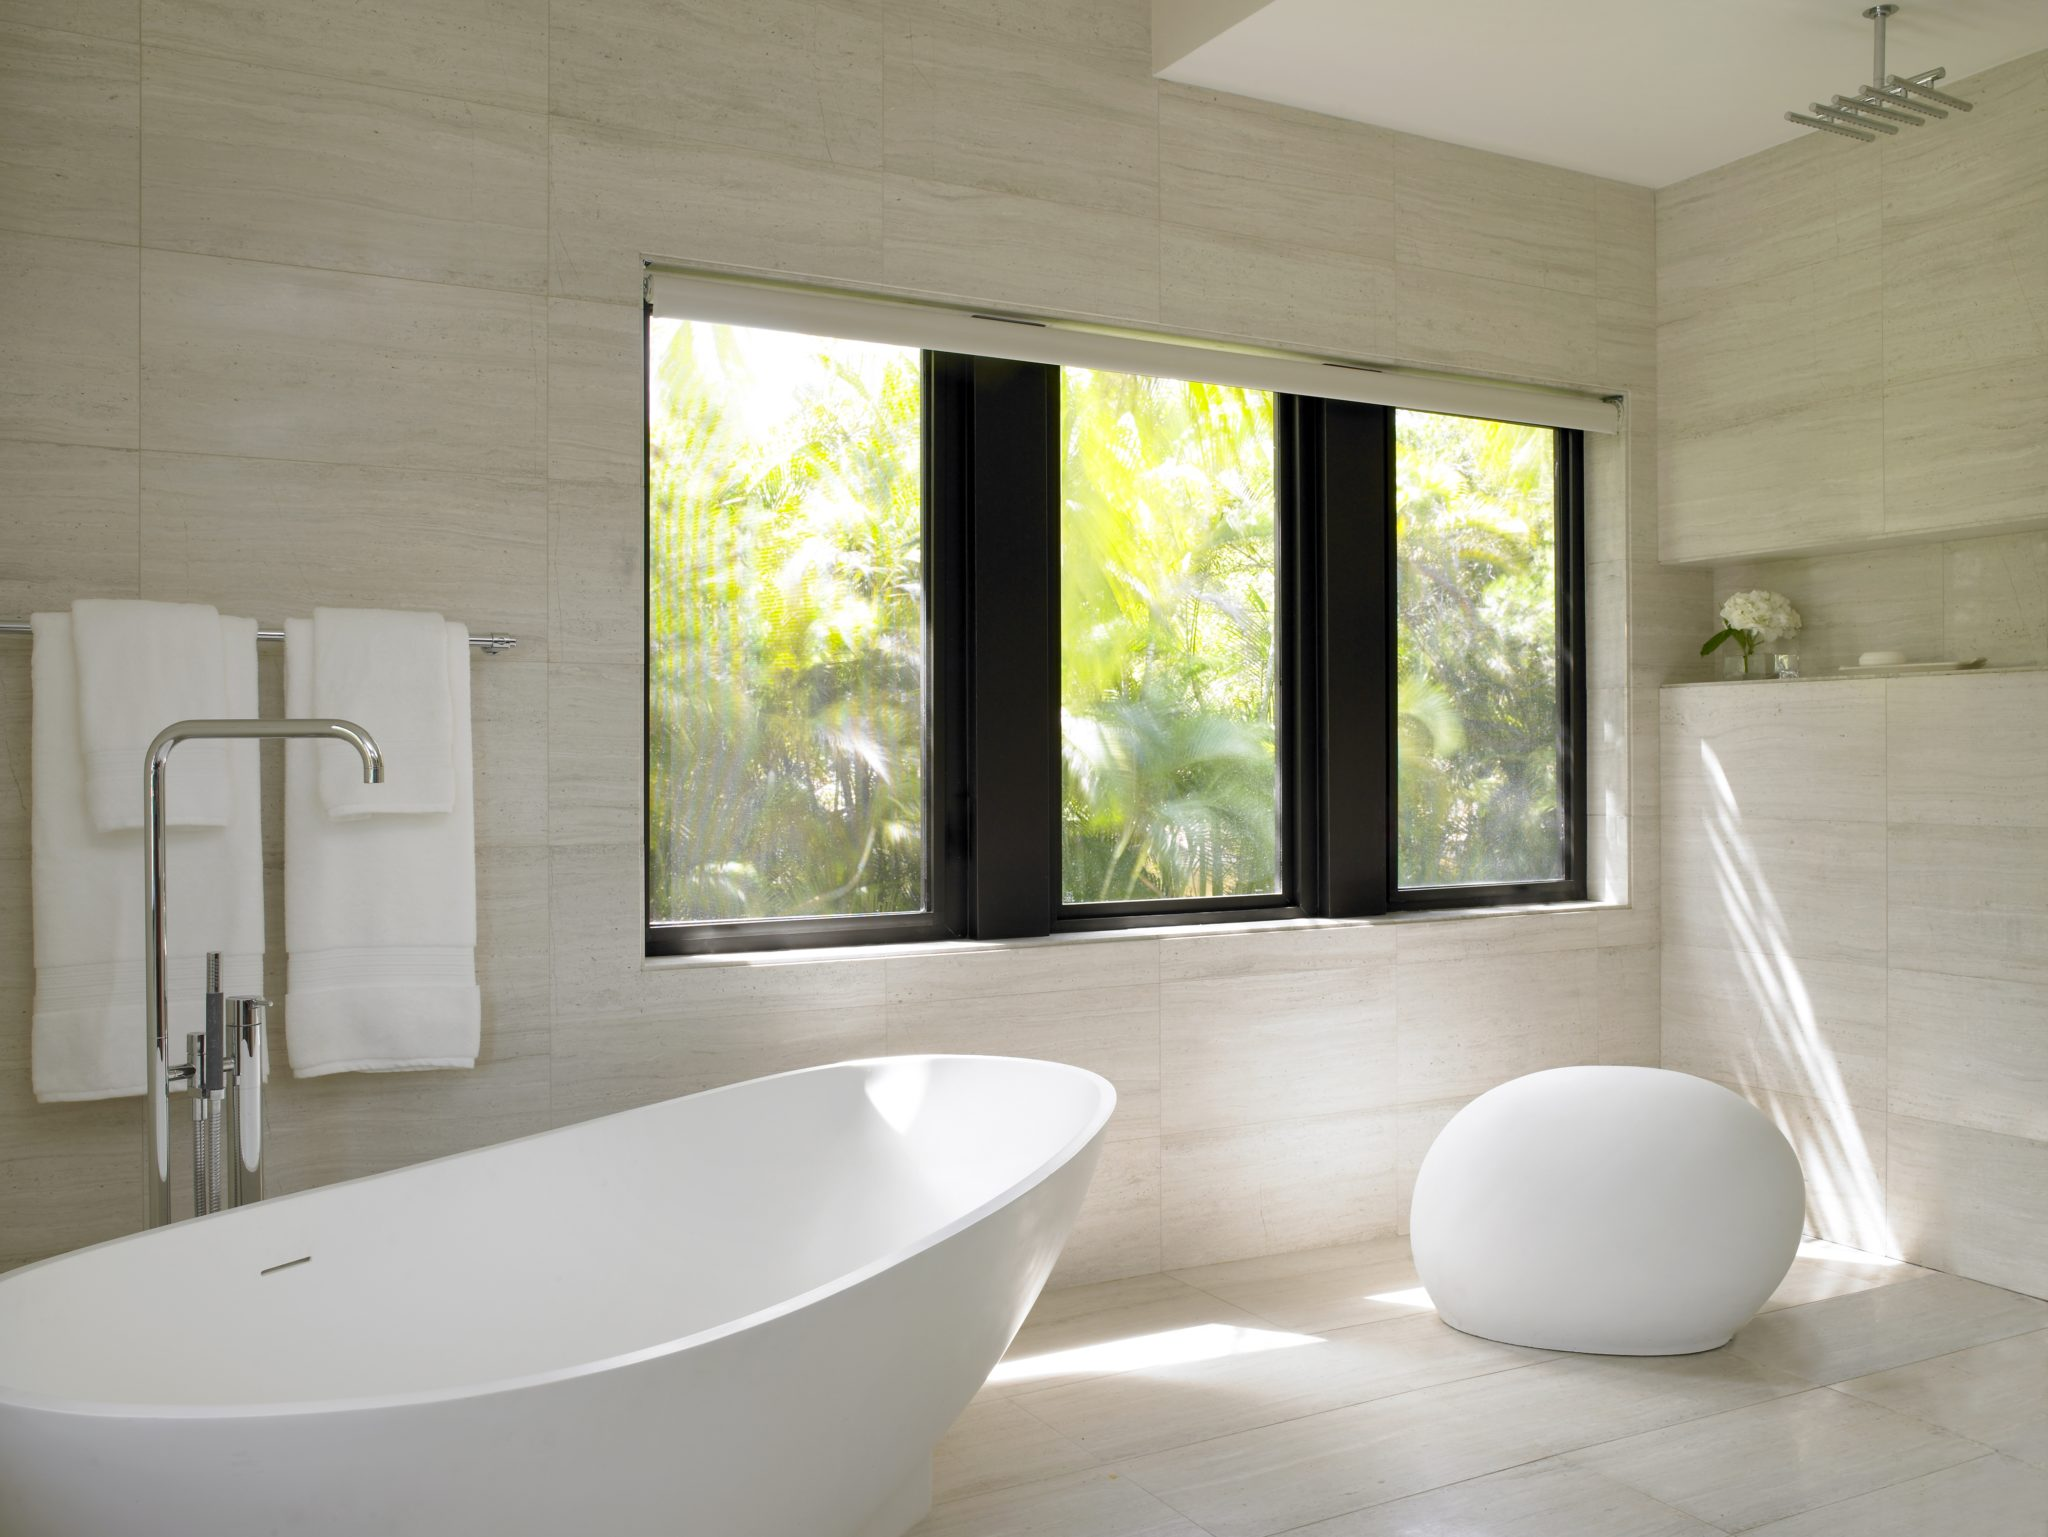 A modern white master bath offers a concrete stool and a freestanding tub and shower that share the sloped floor, so water spills into a slotted drain at wall's edge. By Michael Wolk Design Associates